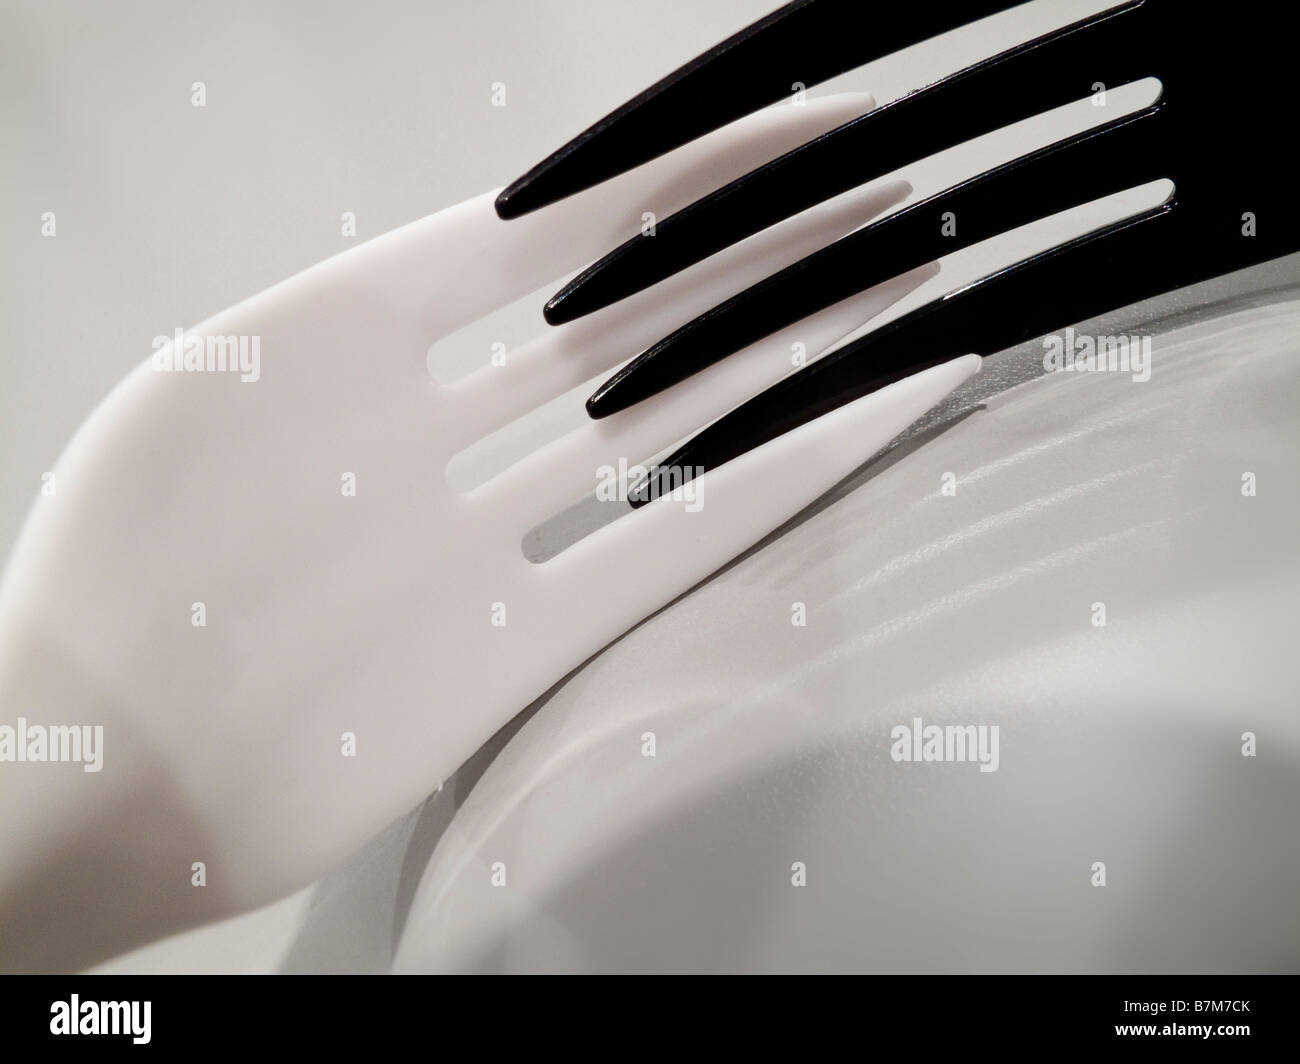 Black and White Forks - Stock Image